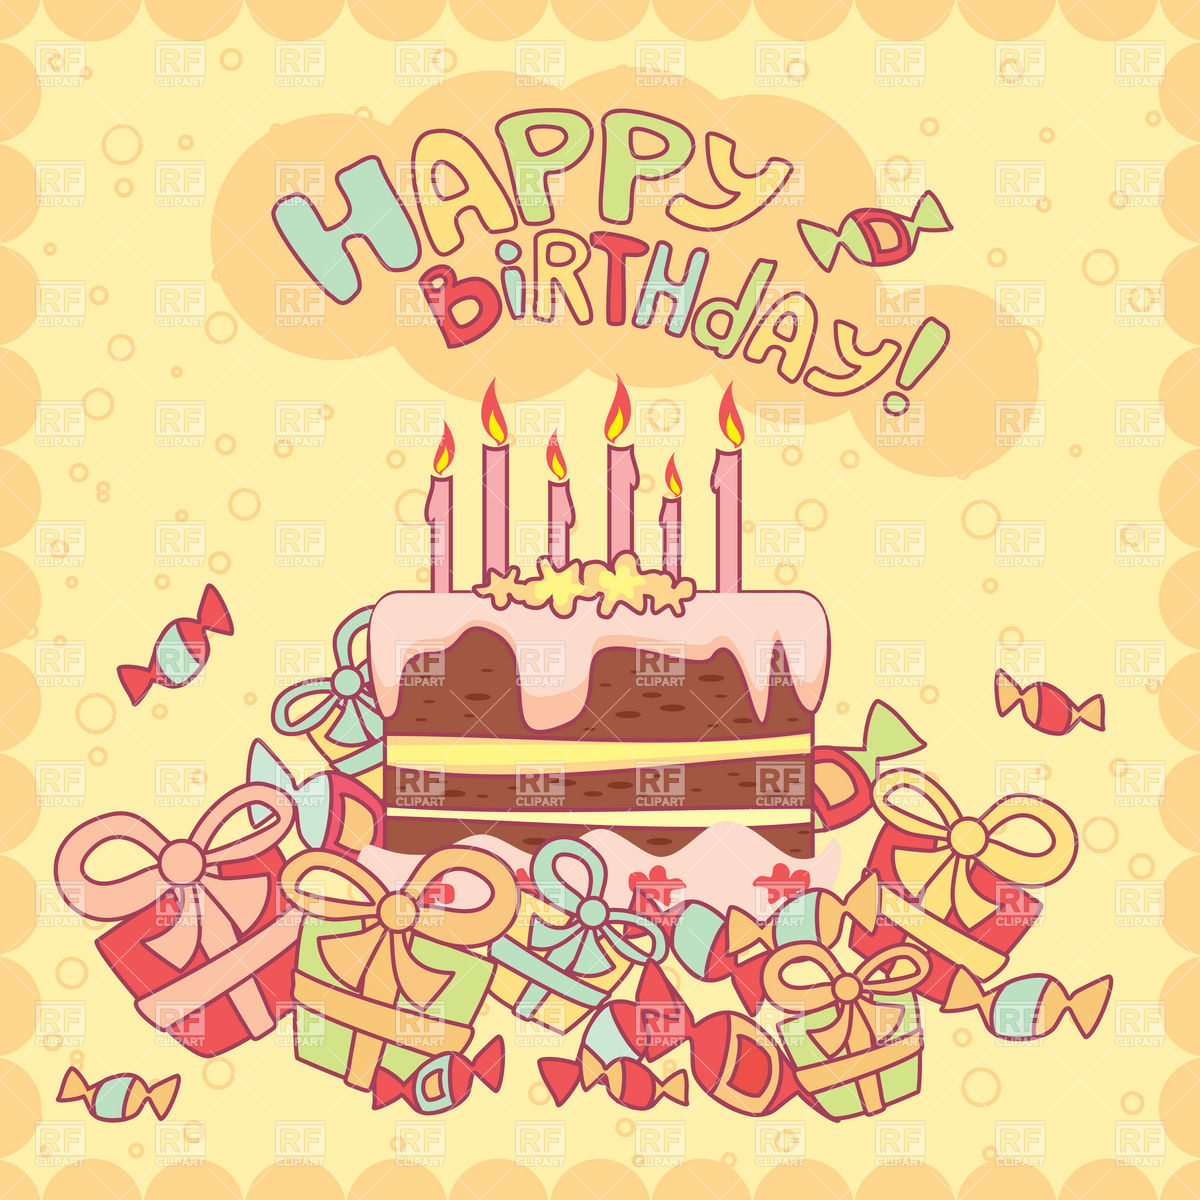 happy birthday wishes free images ; happy-birthday-card-with-cake-candles-and-gifts-Download-Royalty-free-Vector-File-EPS-40109